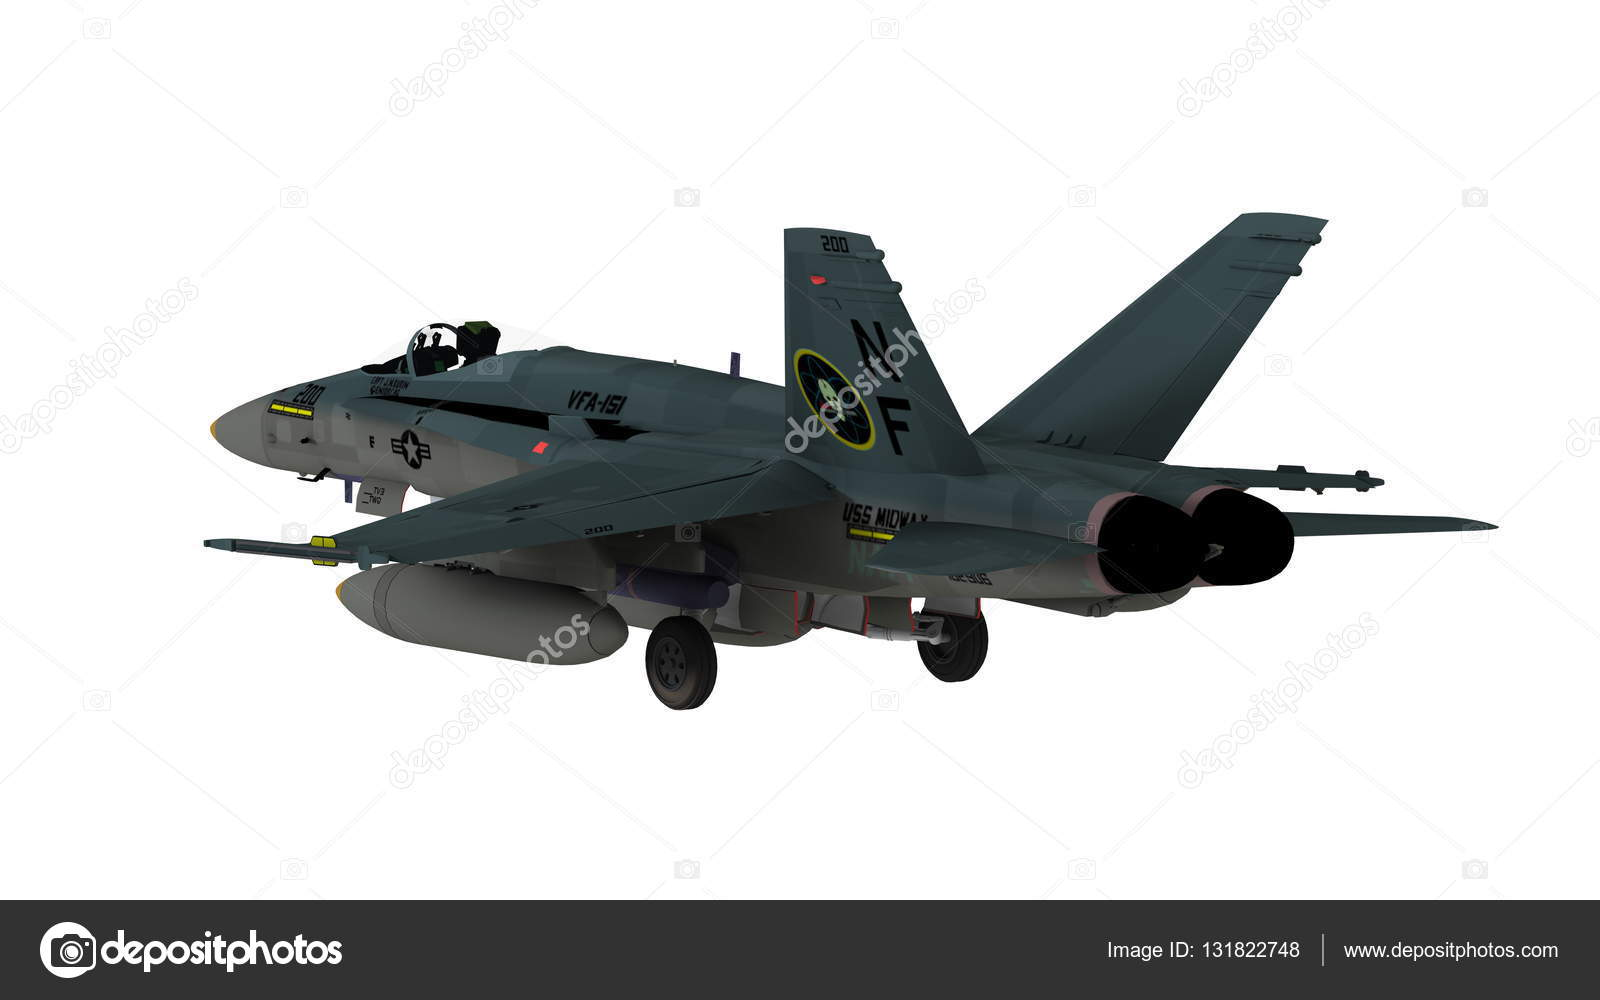 3D CG rendering of a fighter plane — Stock Photo © TsuneoMP #131822748